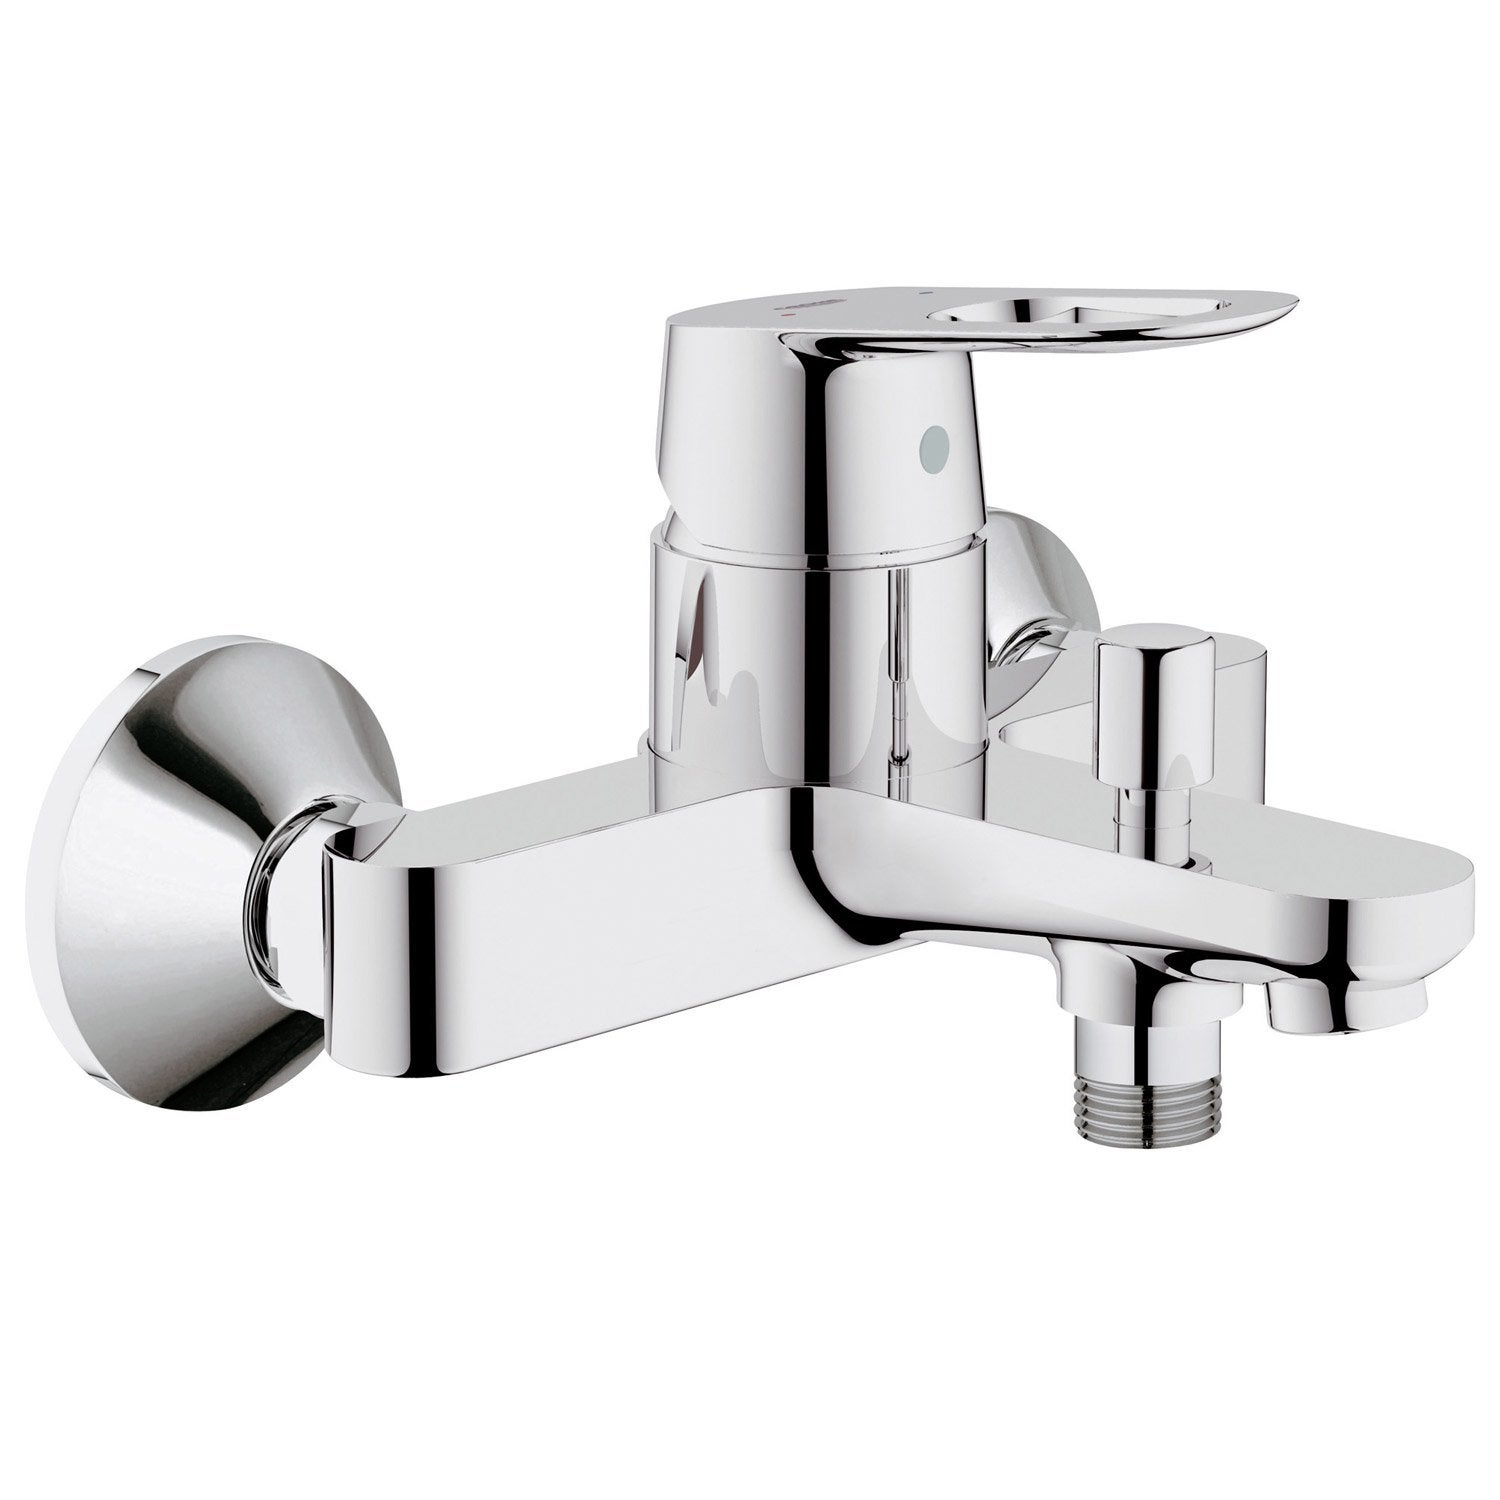 Robinetterie douche brico depot for Ensemble de douche leroy merlin